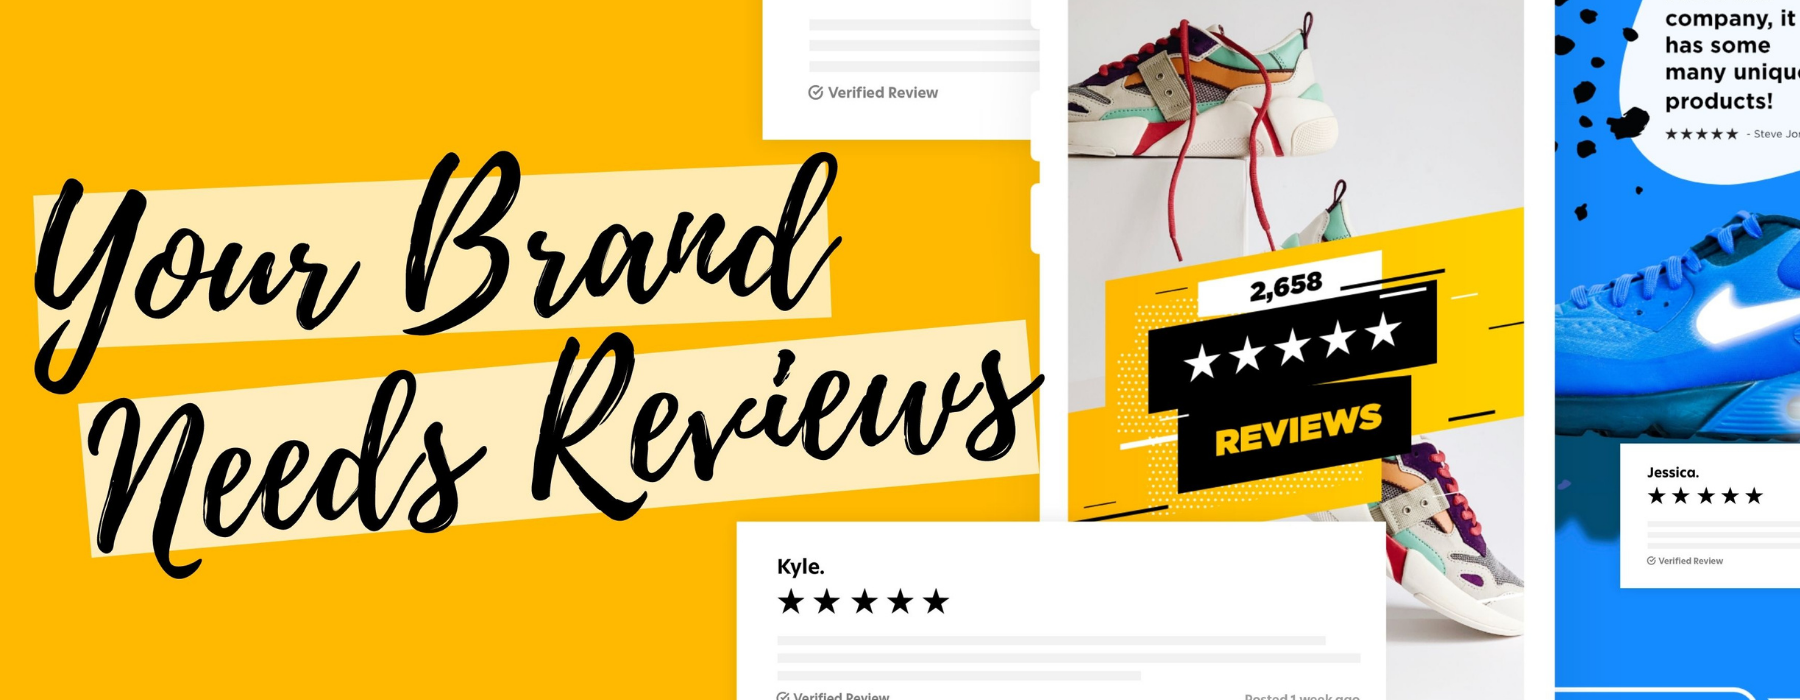 5 Reasons Why Your Brand Needs Reviews